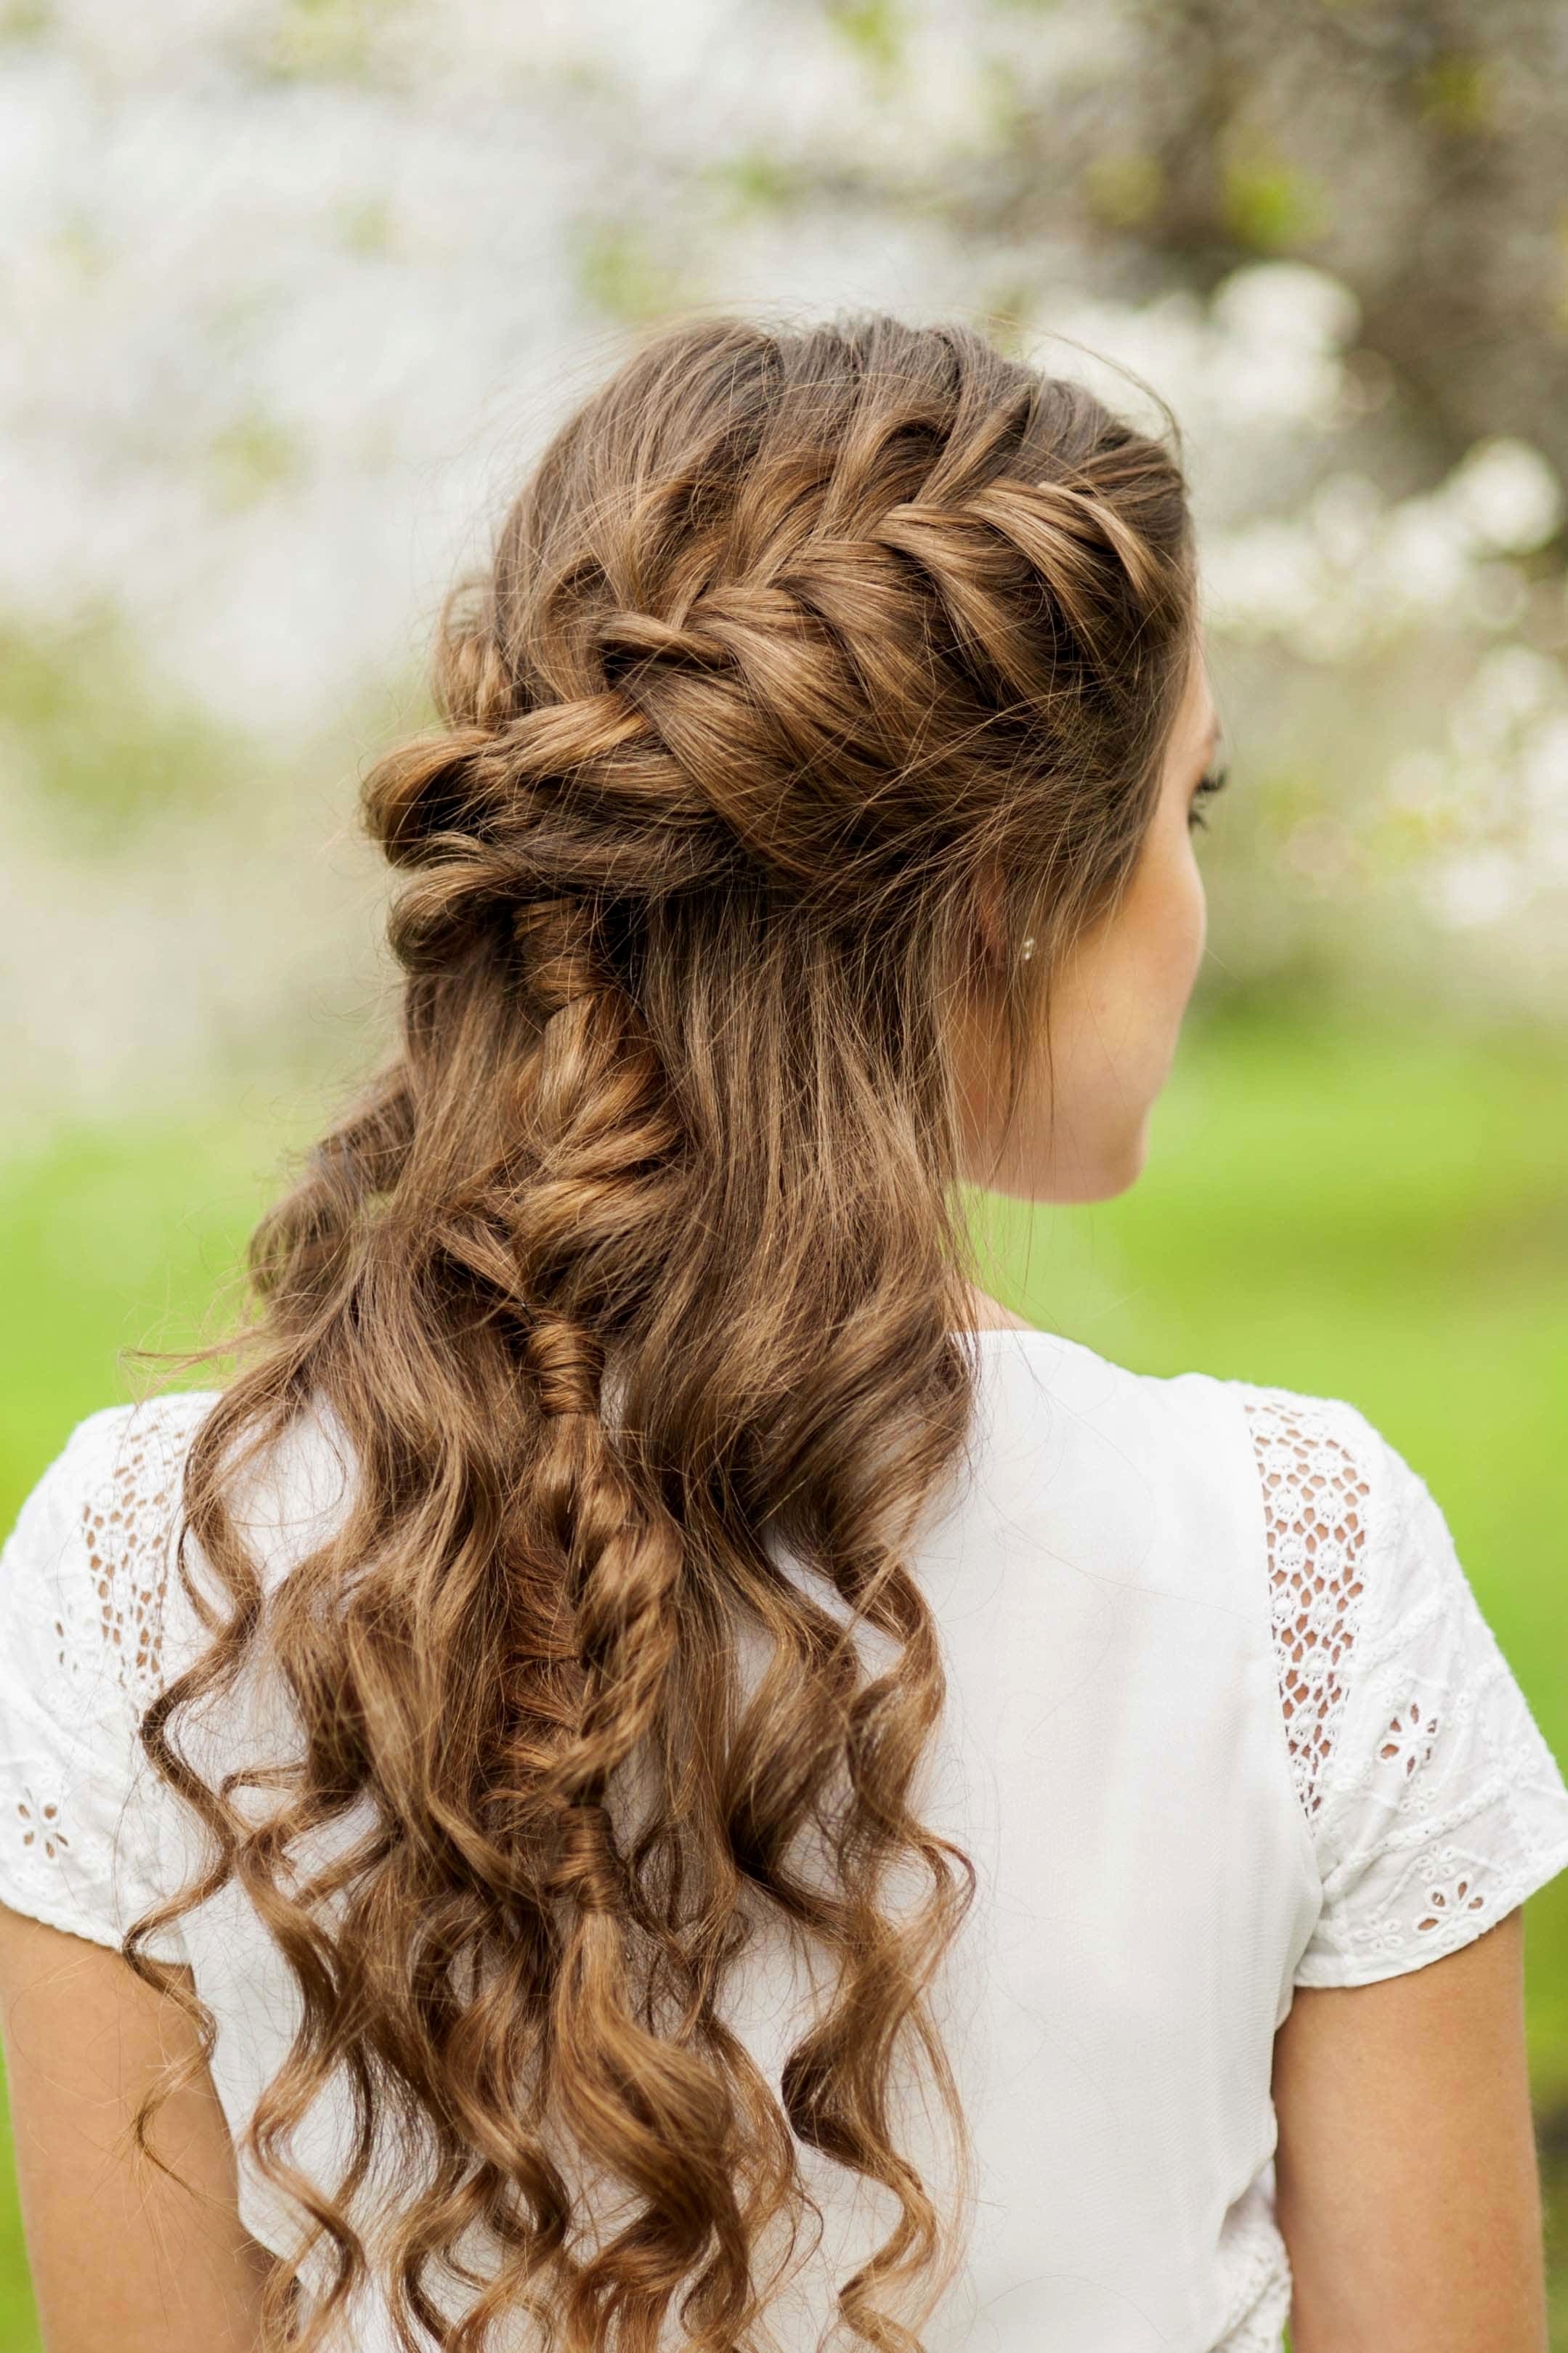 fantastic braided hairstyles with dutt foto bild-Cool braided hairstyles With Dutt architecture